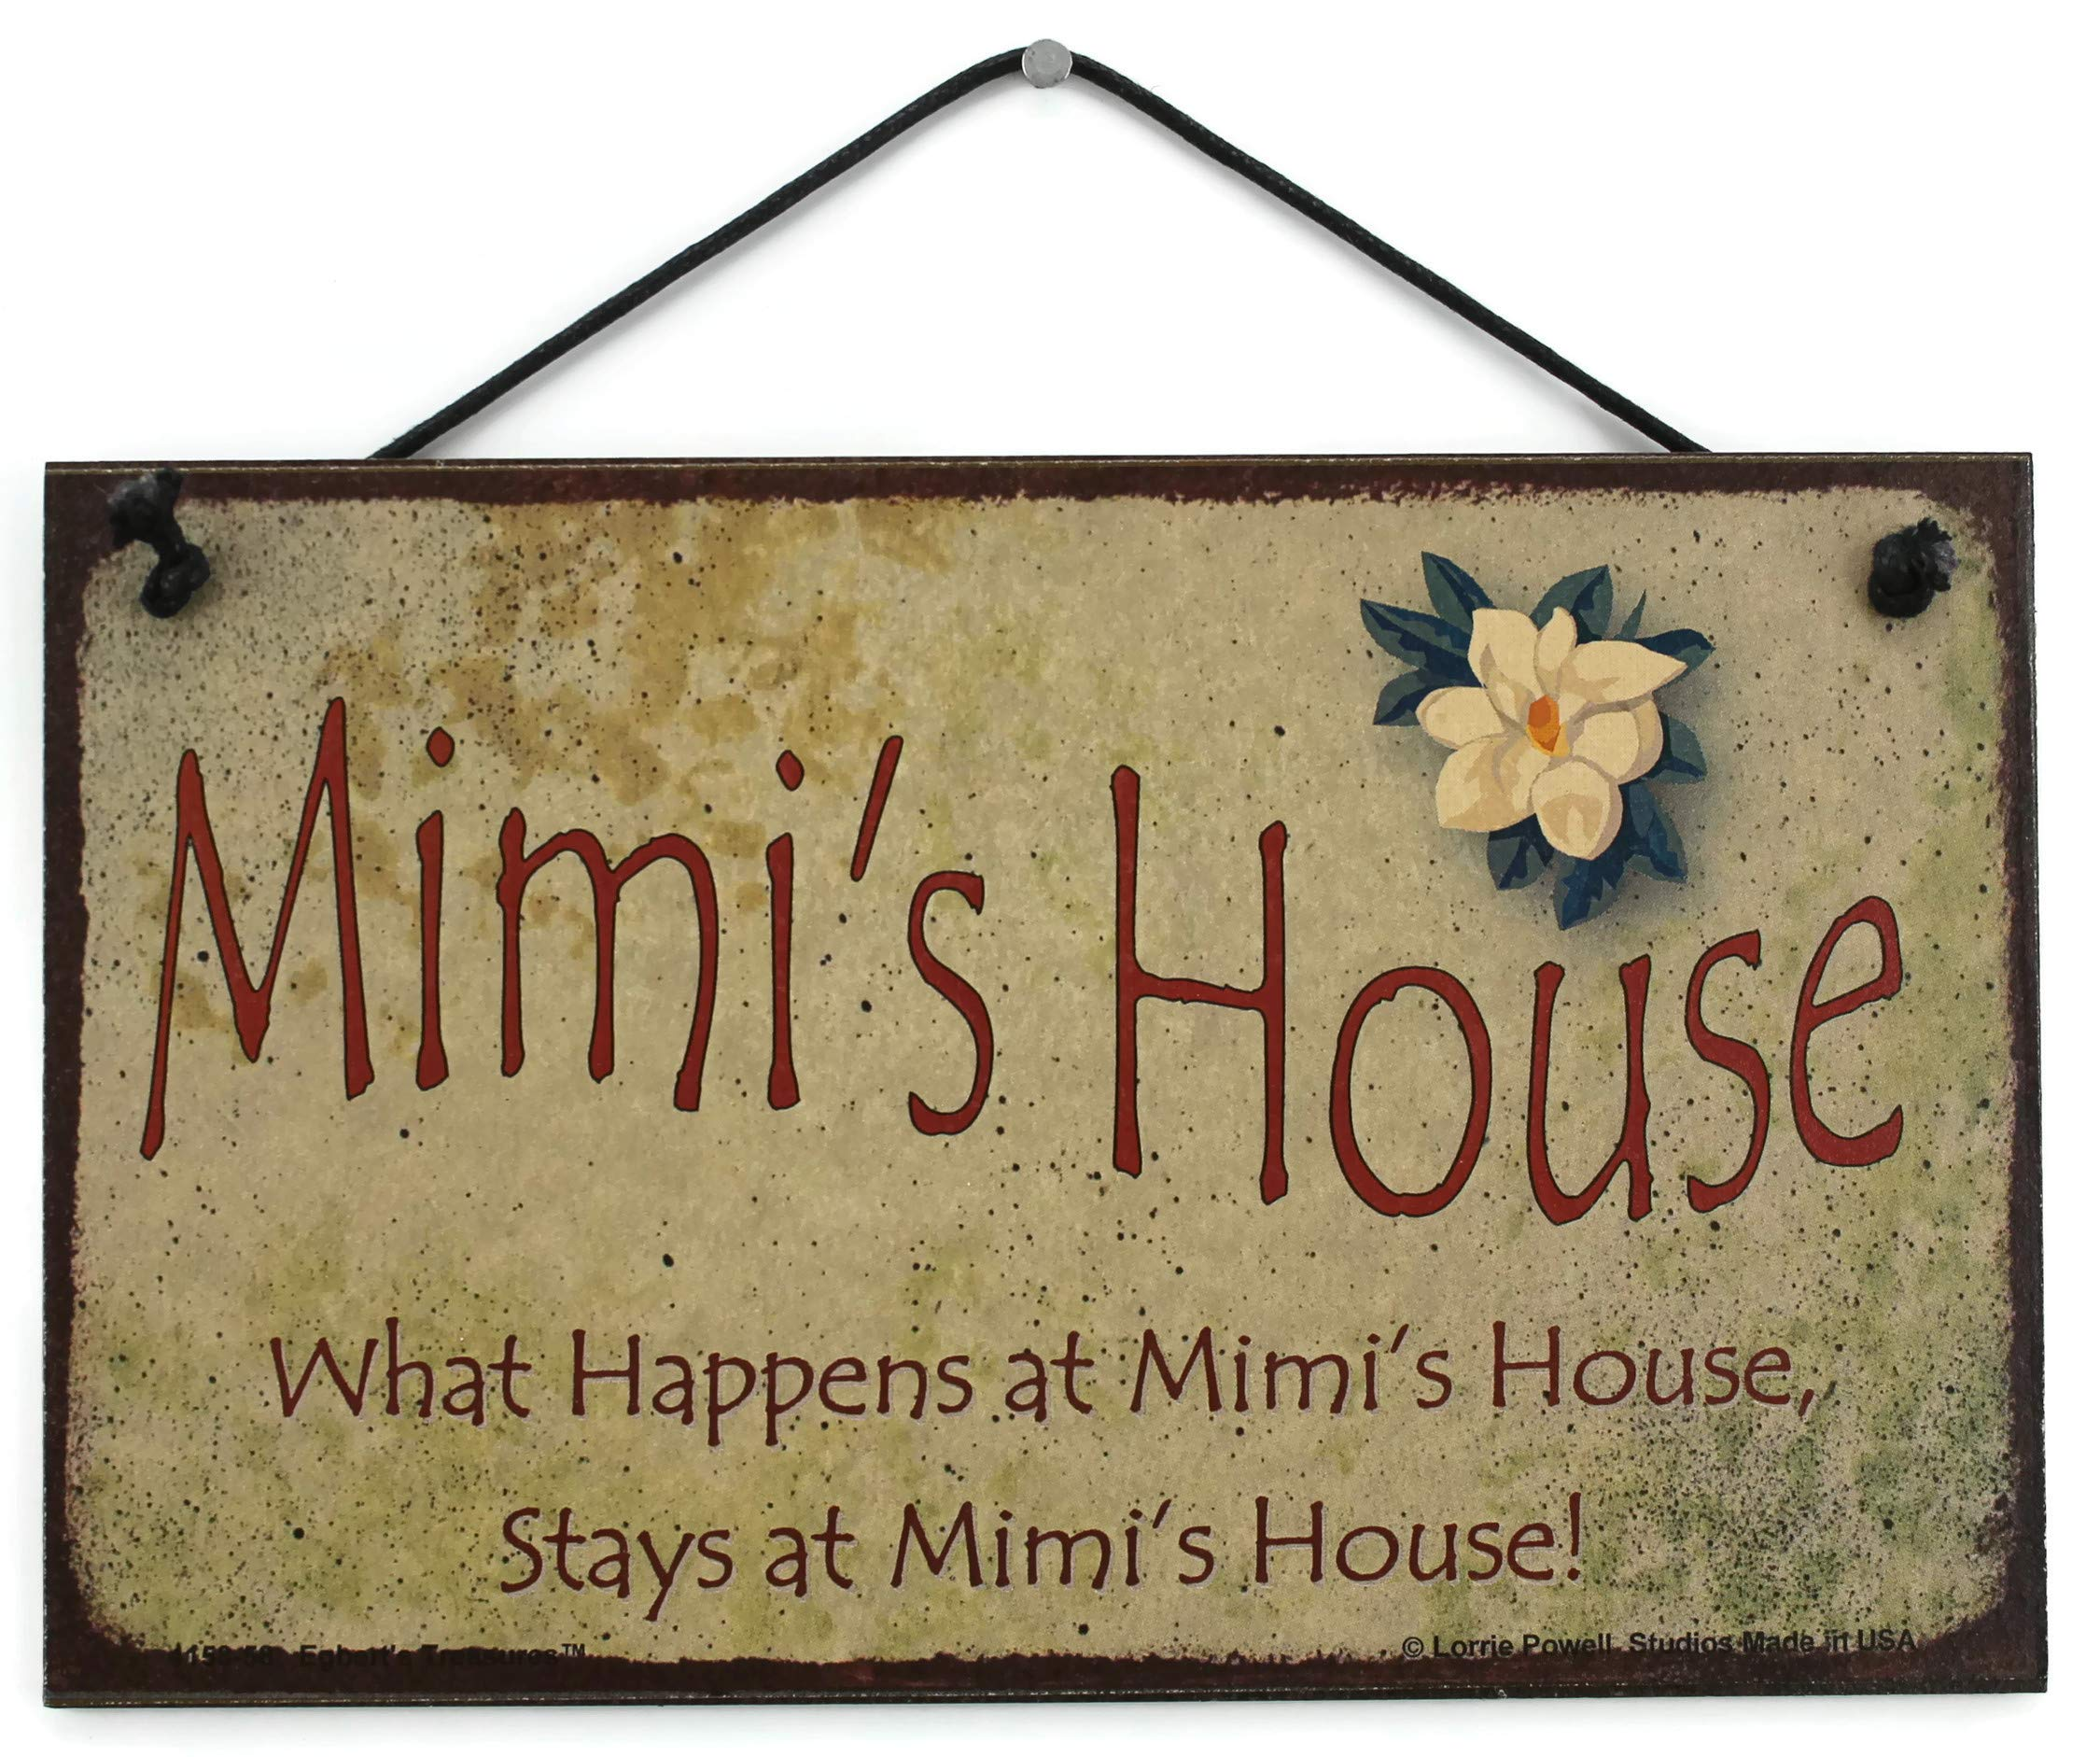 5x8 Vintage Style Sign with Magnolia Saying, ''Mimi's House What Happens at Mimi's House, Stays at Mimi's House!'' Decorative Fun Universal Household Signs from Egbert's Treasures by Egbert's Treasures (Image #1)